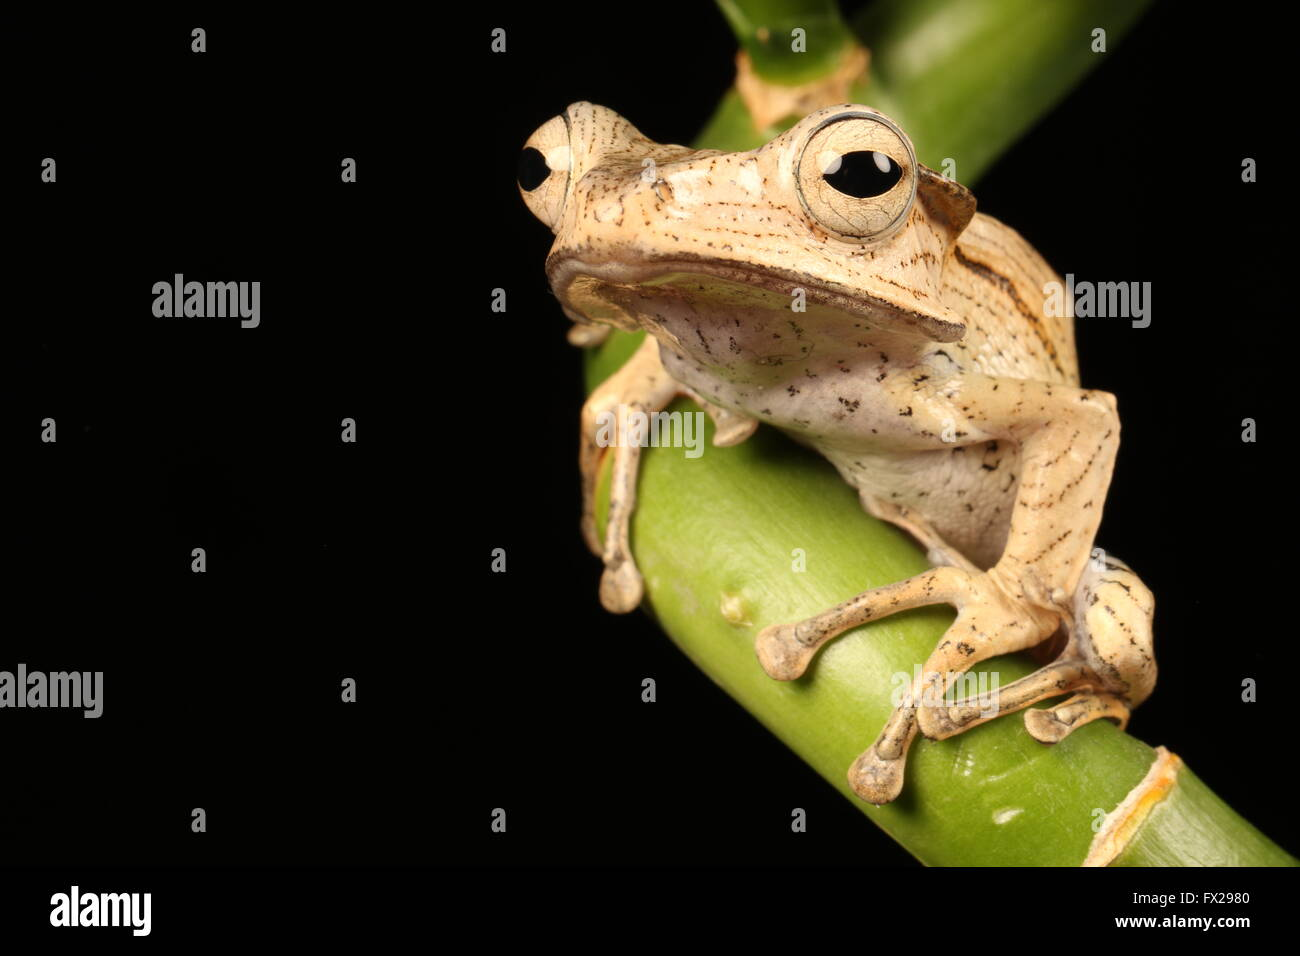 brown tree frog on bamboo - Stock Image